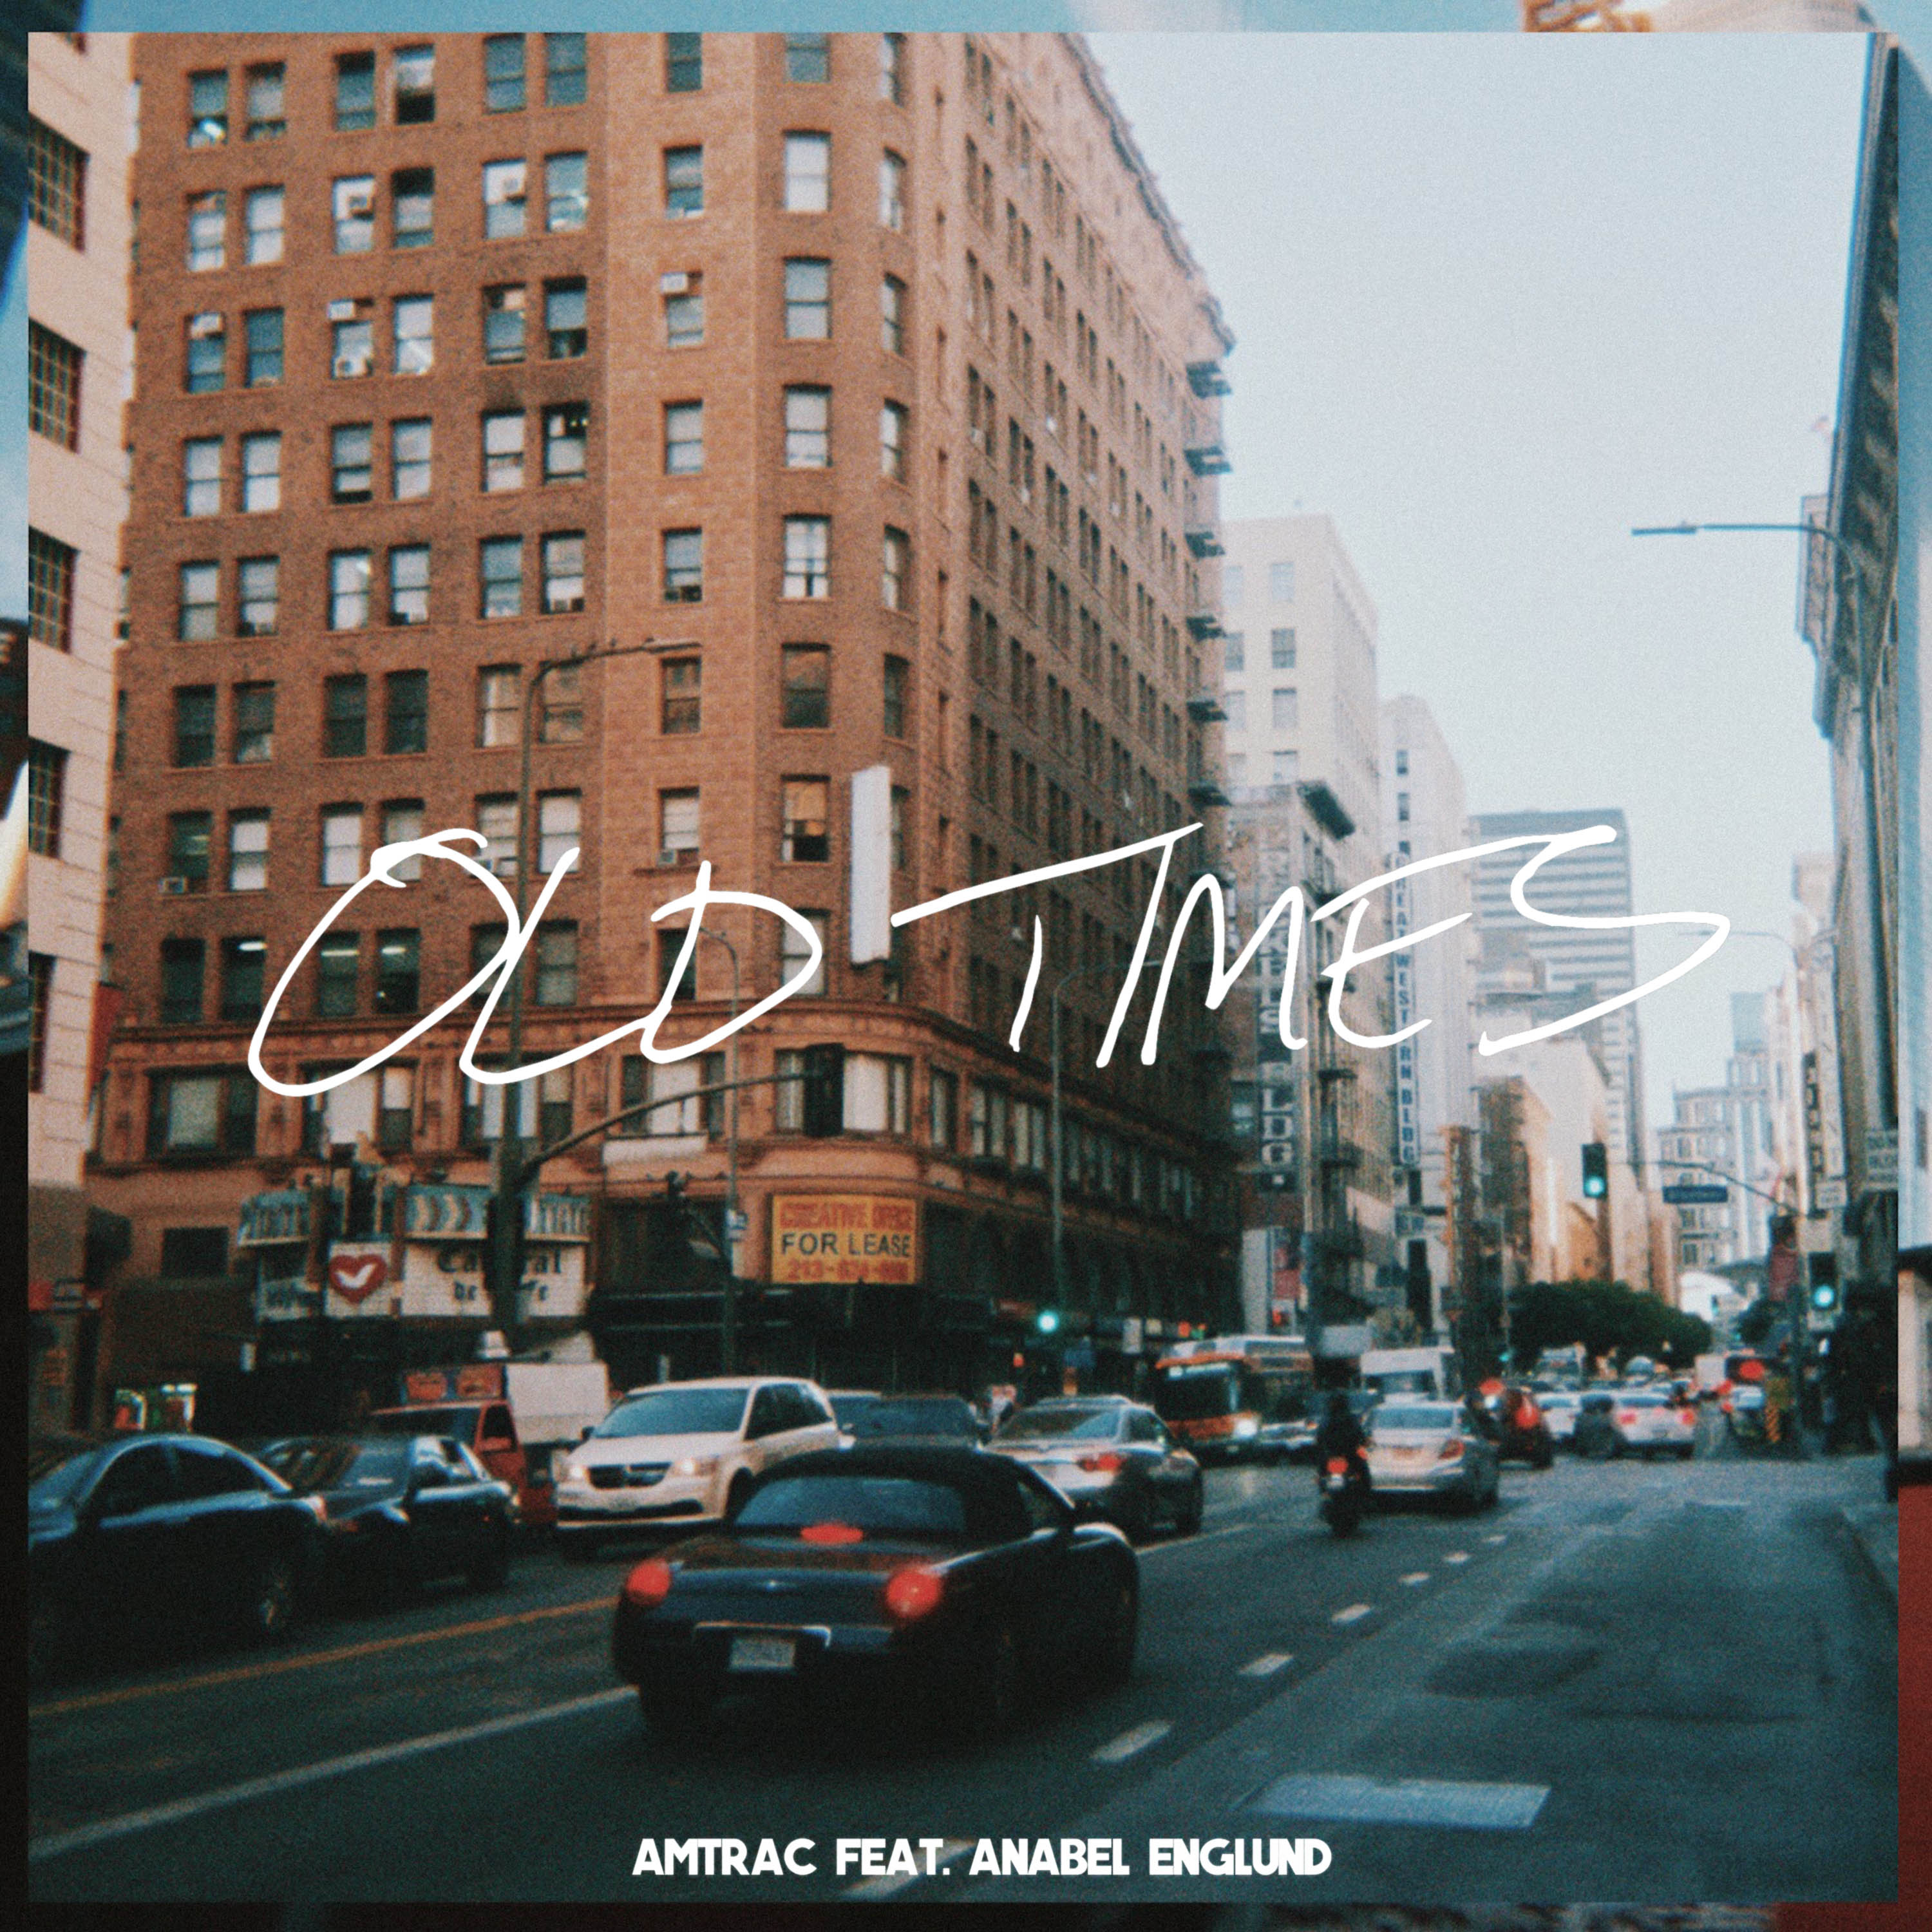 Amtrac - Old Times (feat. Anabel Englund) [Official Audio]